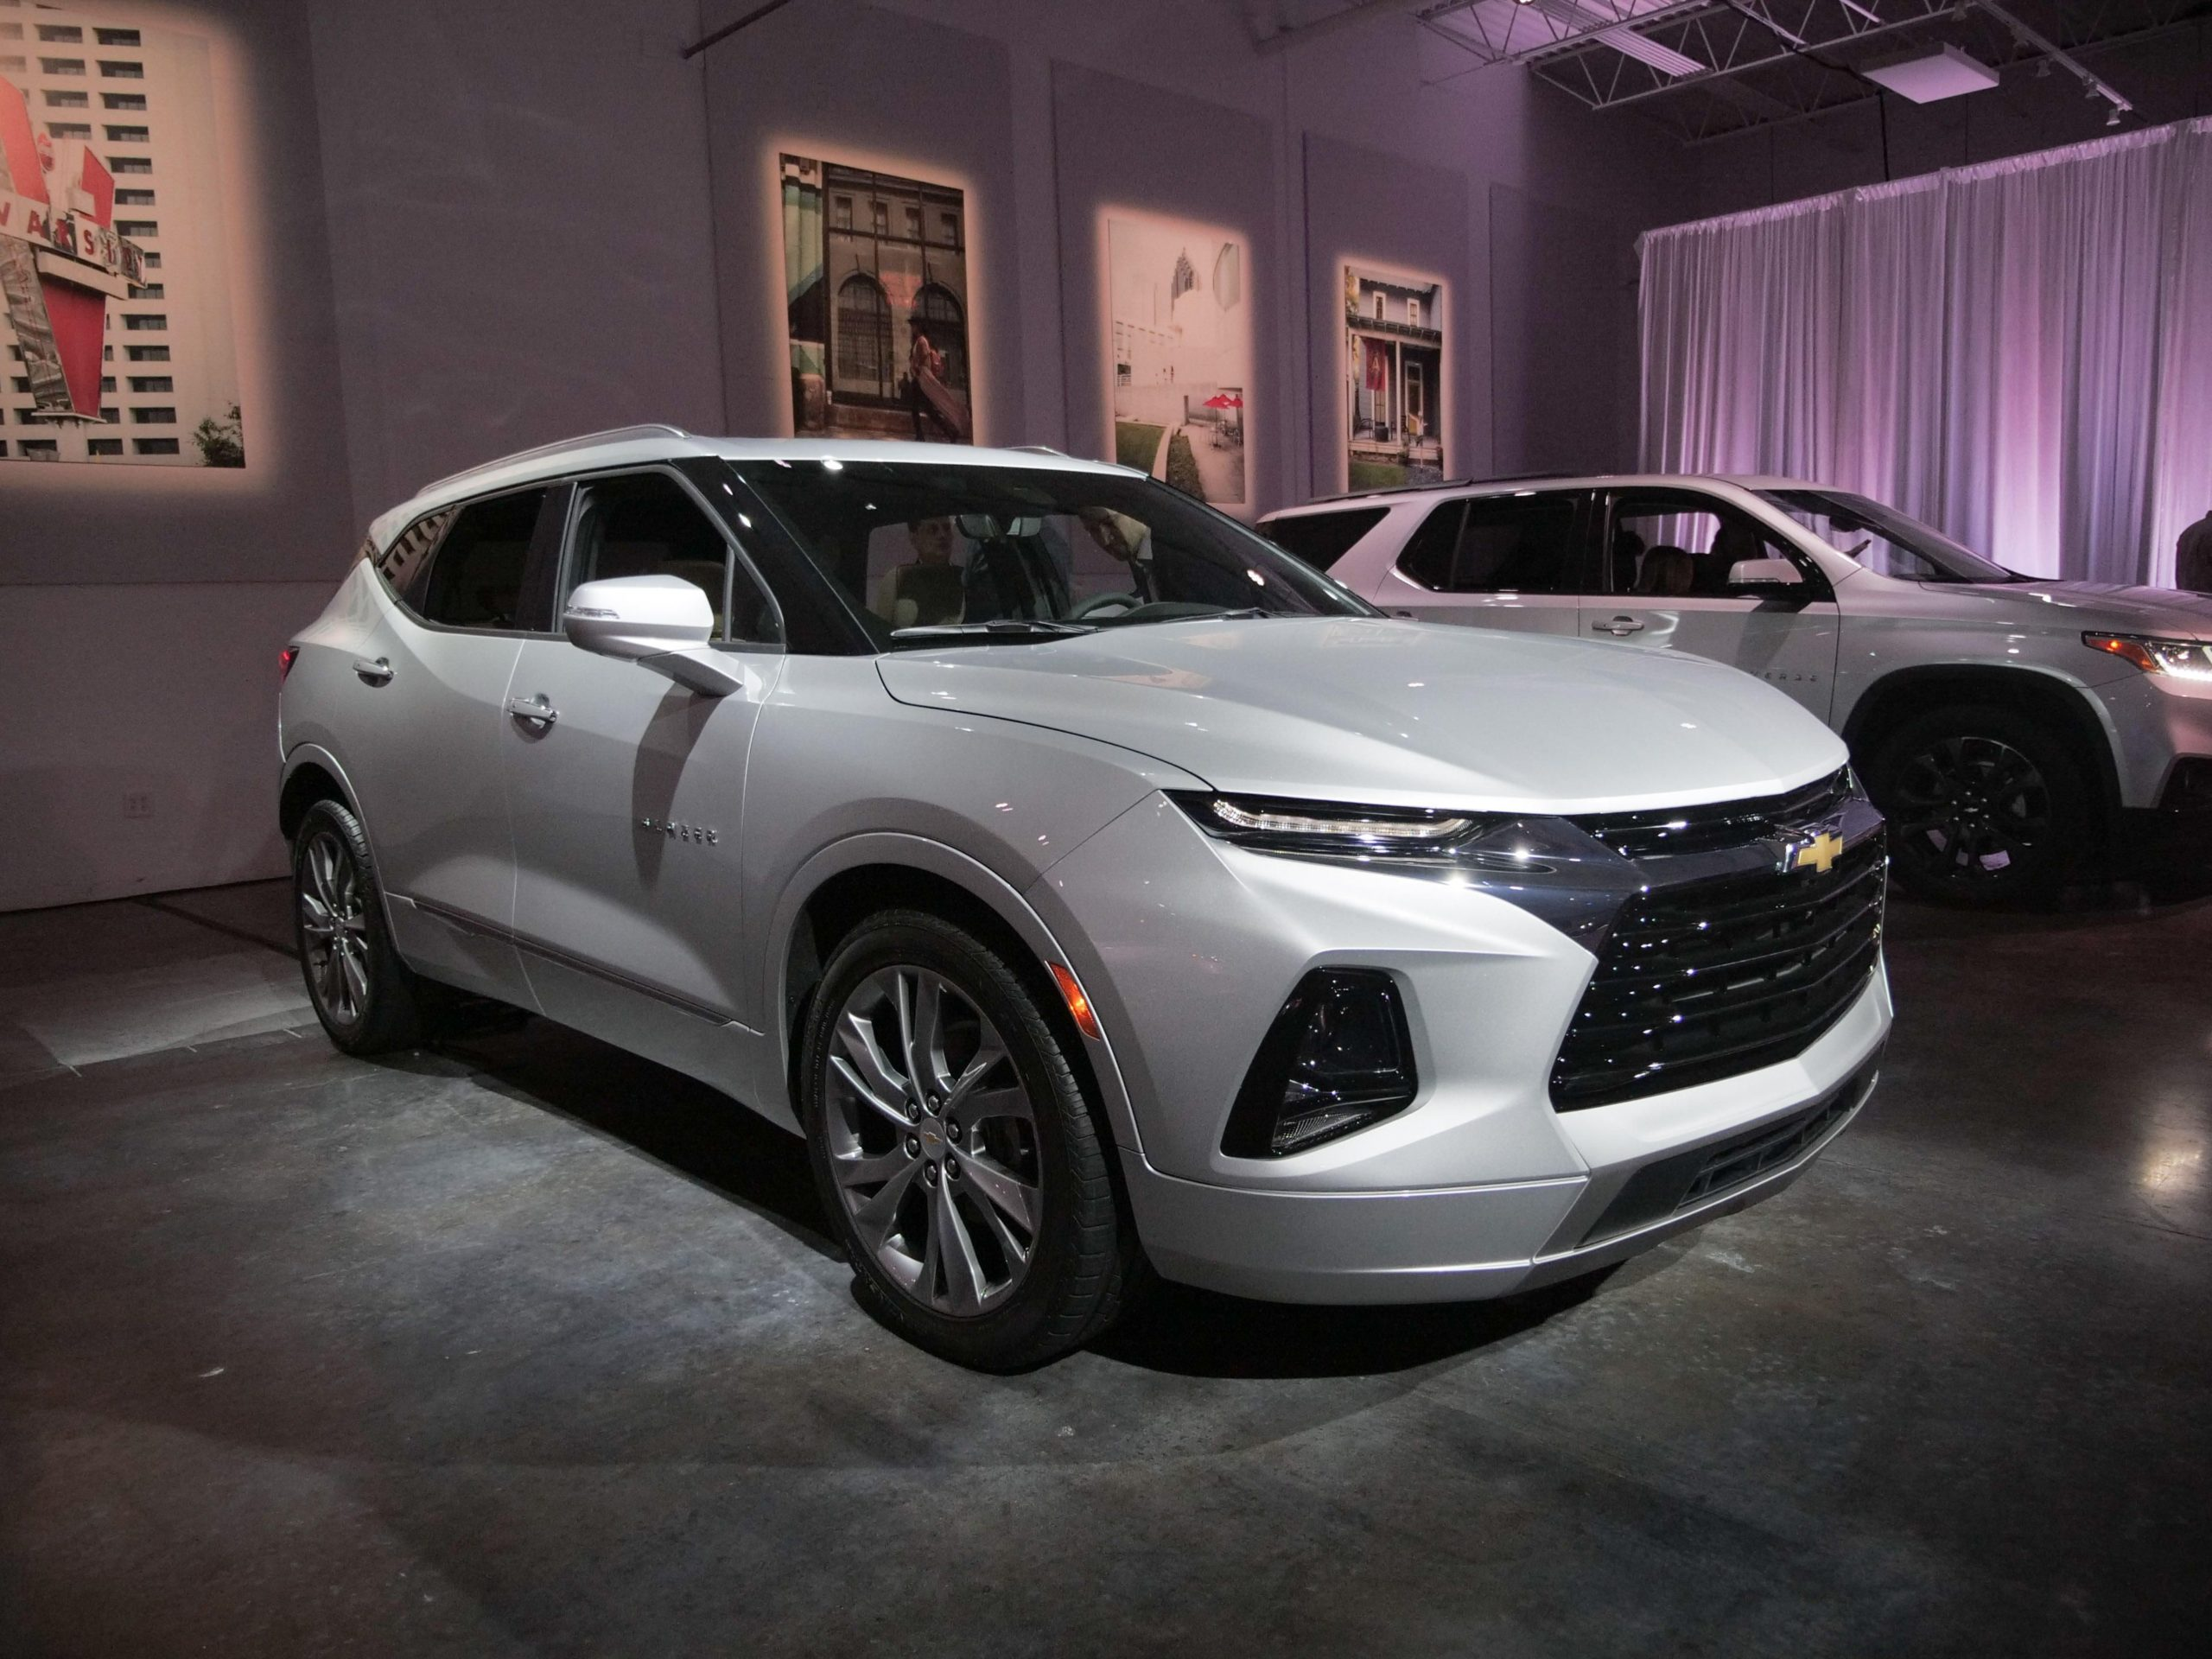 2021 The Chevy Blazer Release Date and Concept